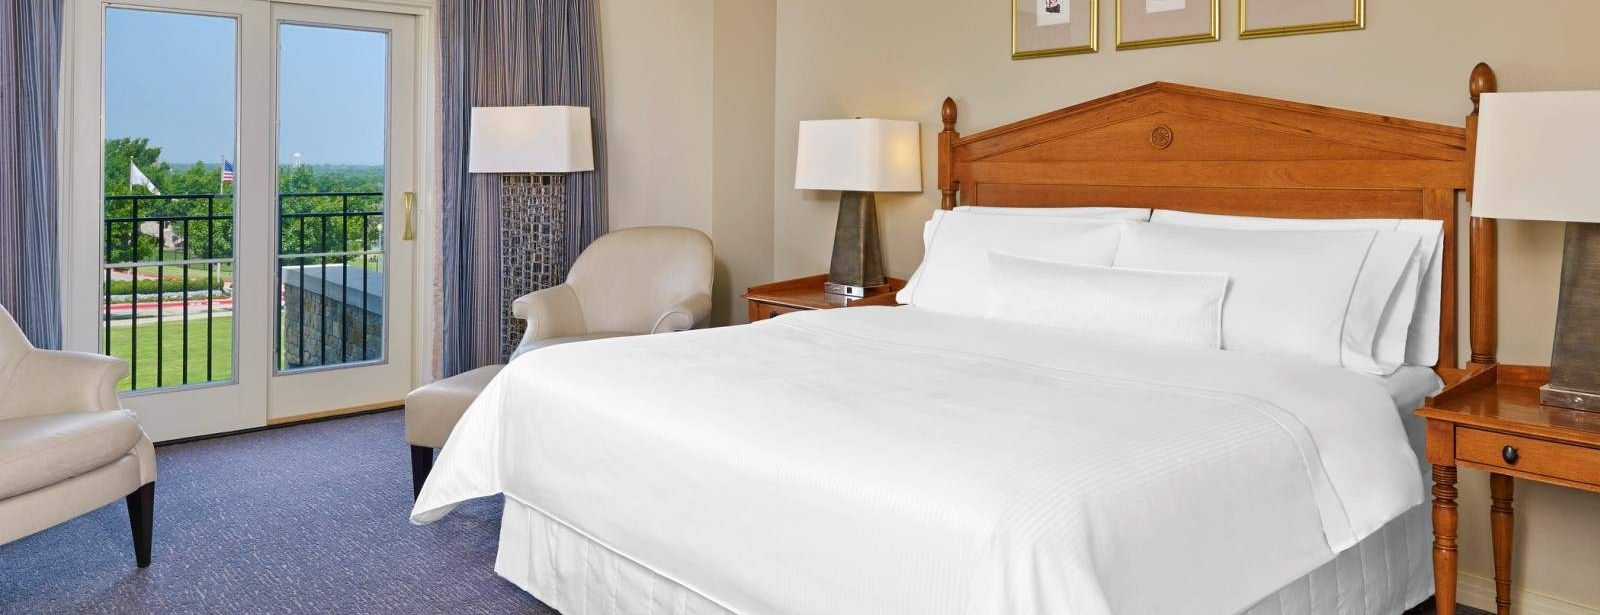 Frisco Accommodation - Deluxe Room - The Westin Stonebriar Hotel and Golf Club